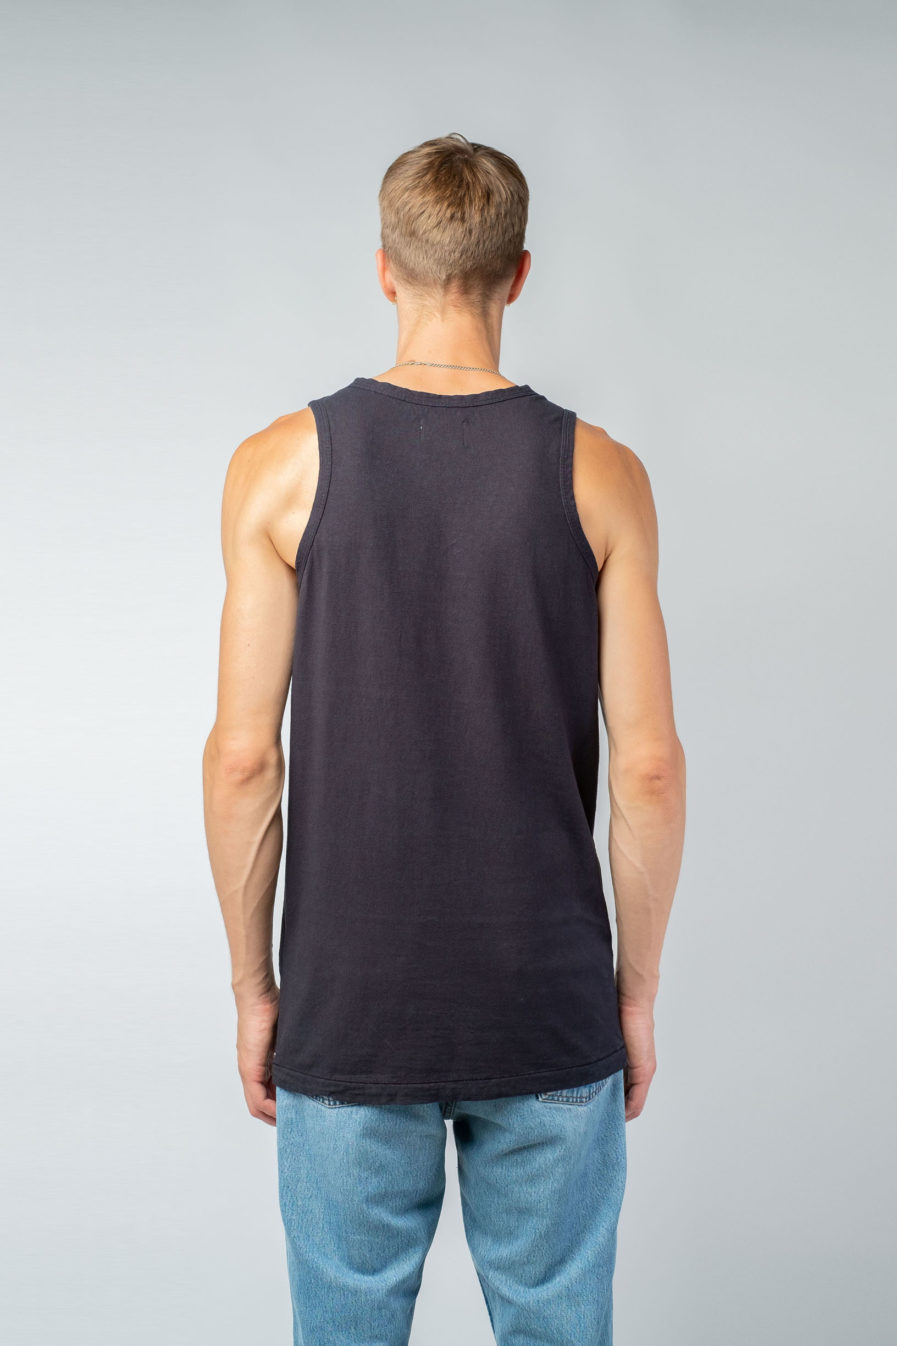 MAN unisex singlet tanktop hemp organic cotton FRANS Carbon black back